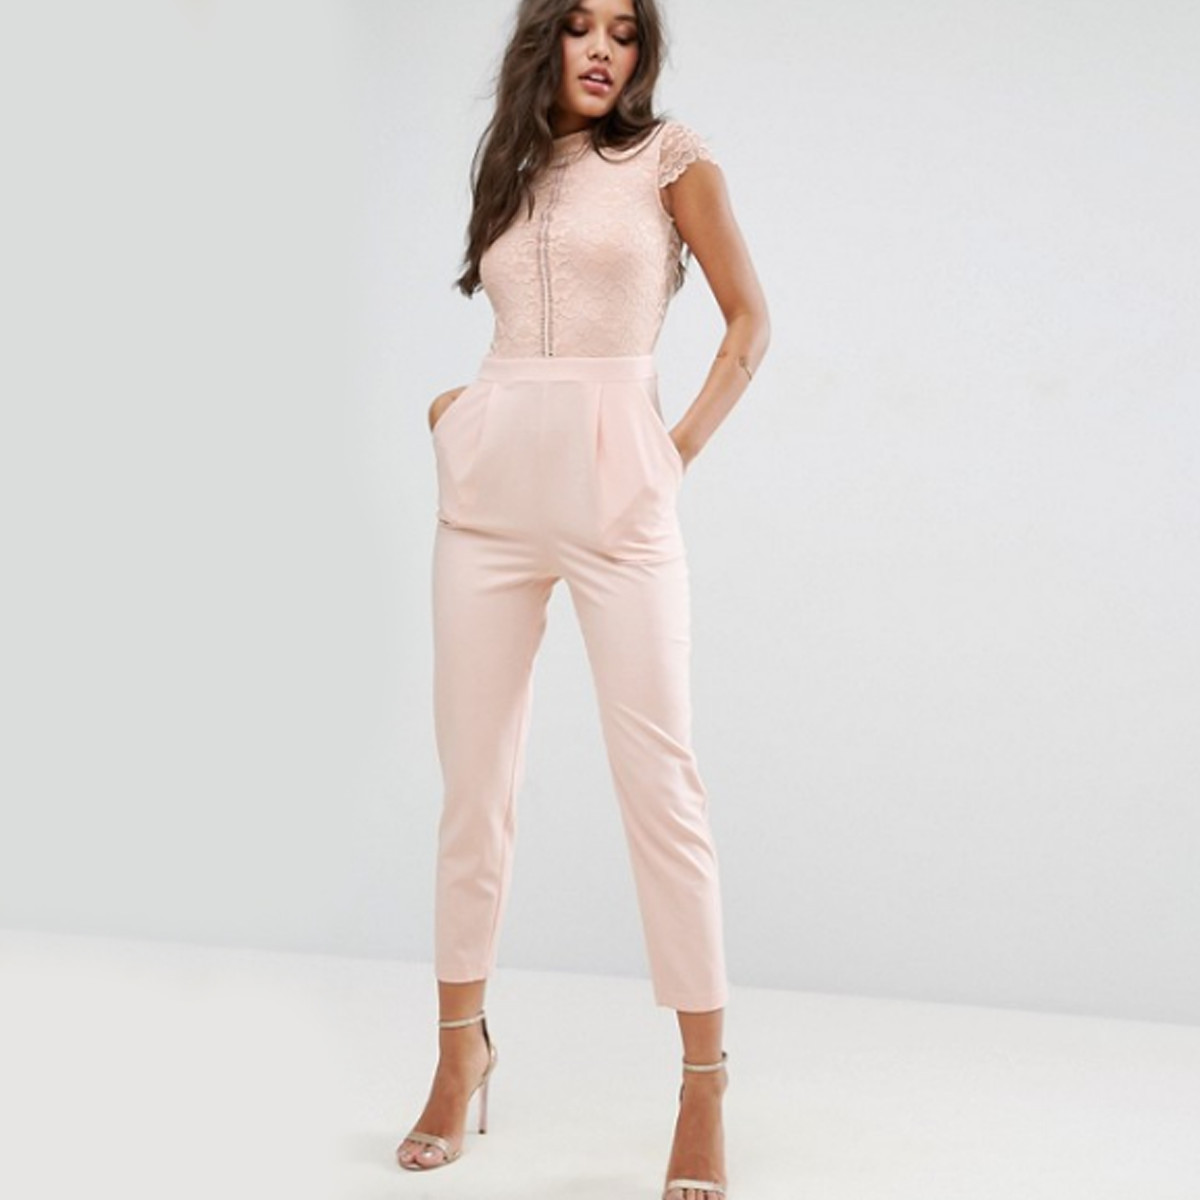 Woman in a lace jumpsuit photo